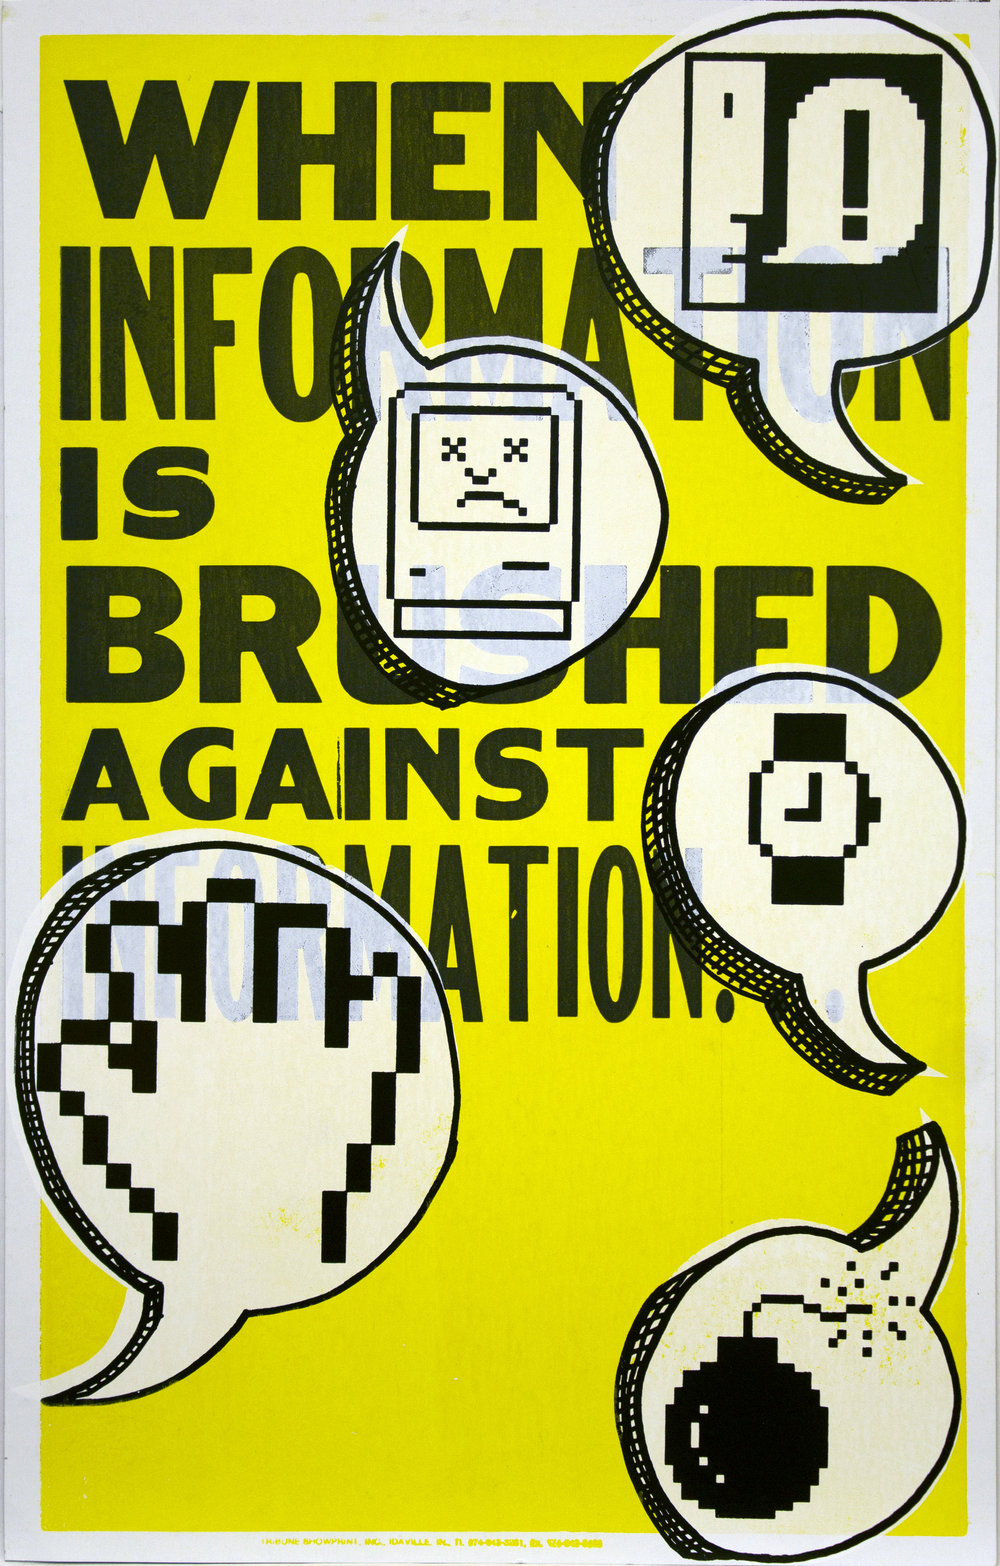 Christopher Michlig and Jan Tumlir,  The Information Bomb (WHEN INFORMATION IS BRUSHED AGAINST INFORMATION...) , 2017. Silkscreen and letterpress on poster board, 14 x 22 inches